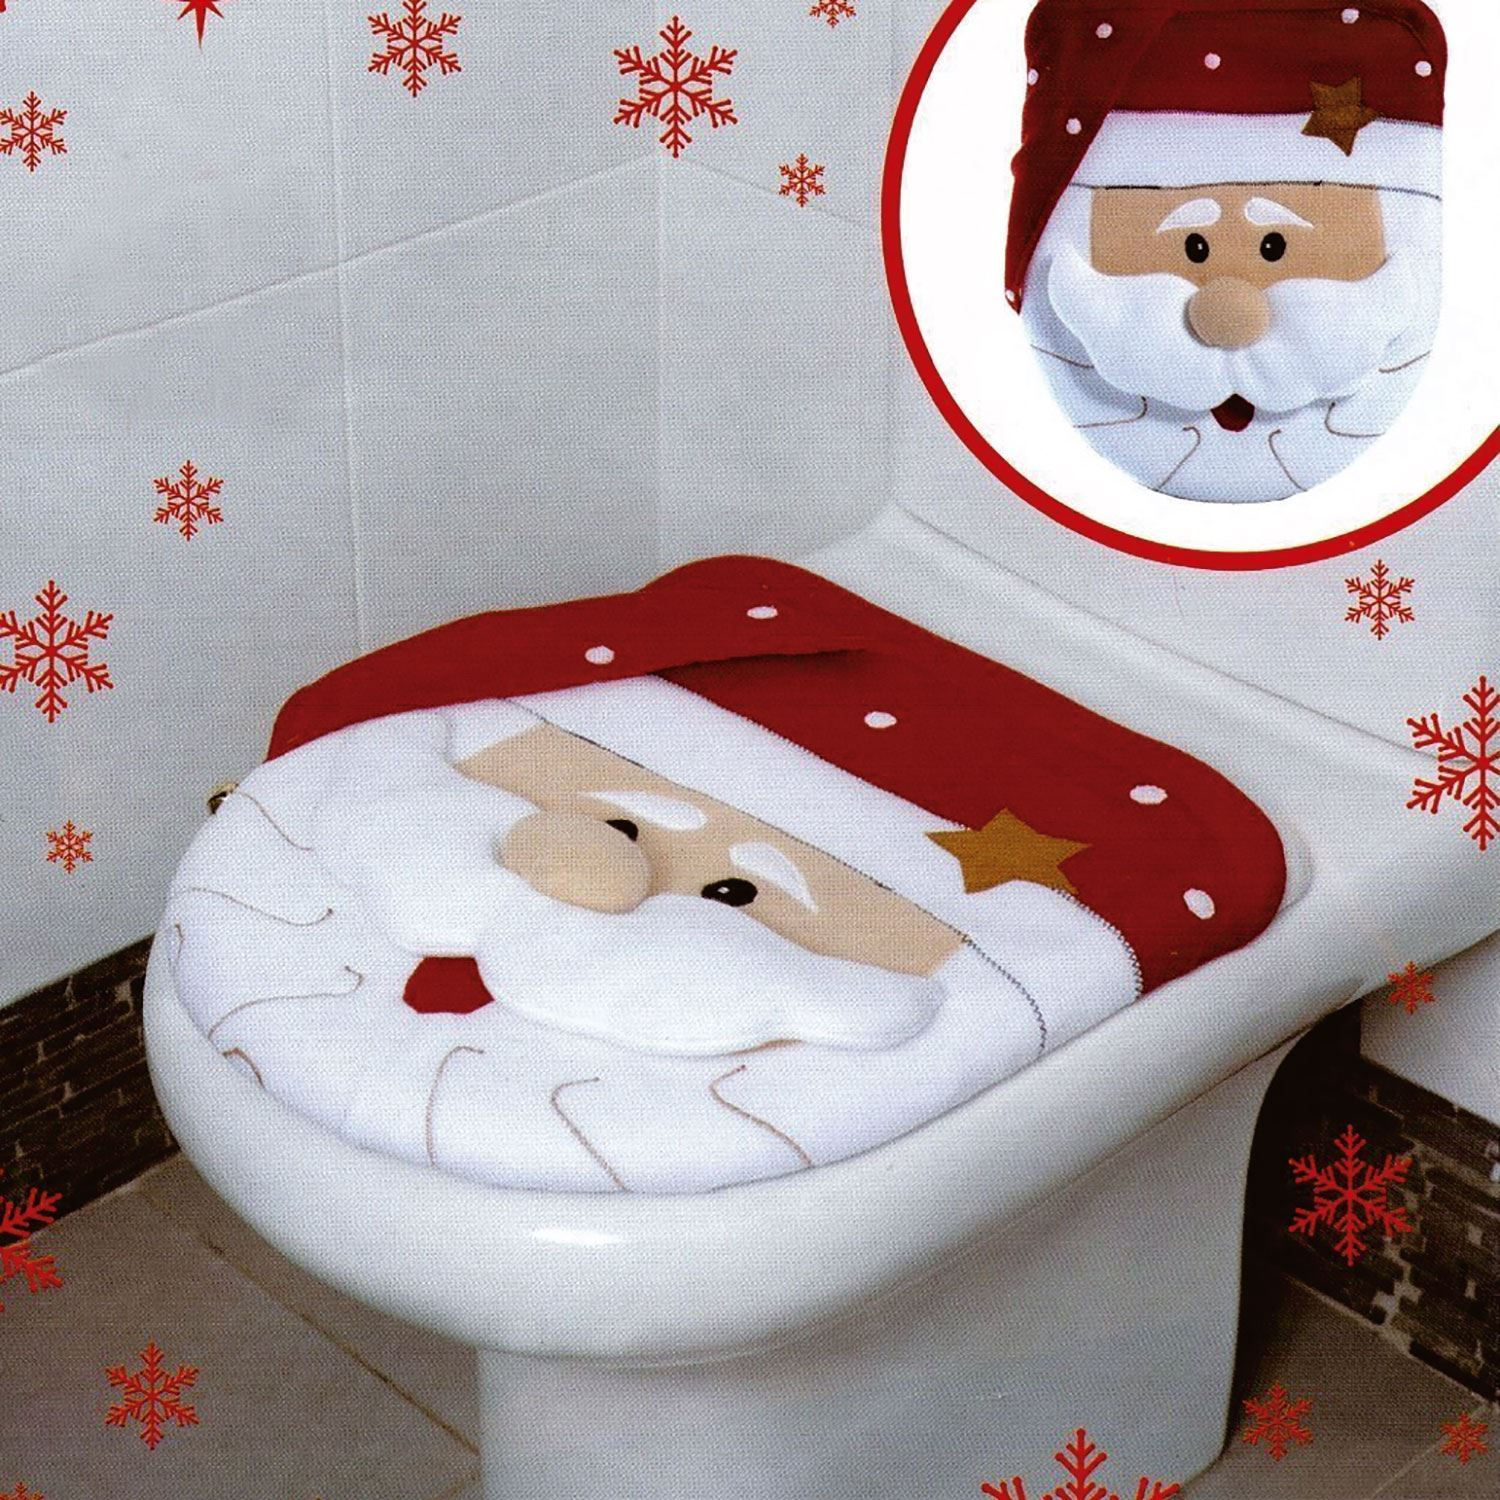 Xmas Decoration Festive Santa Christmas Toilet Seat Cover Set Bathroom